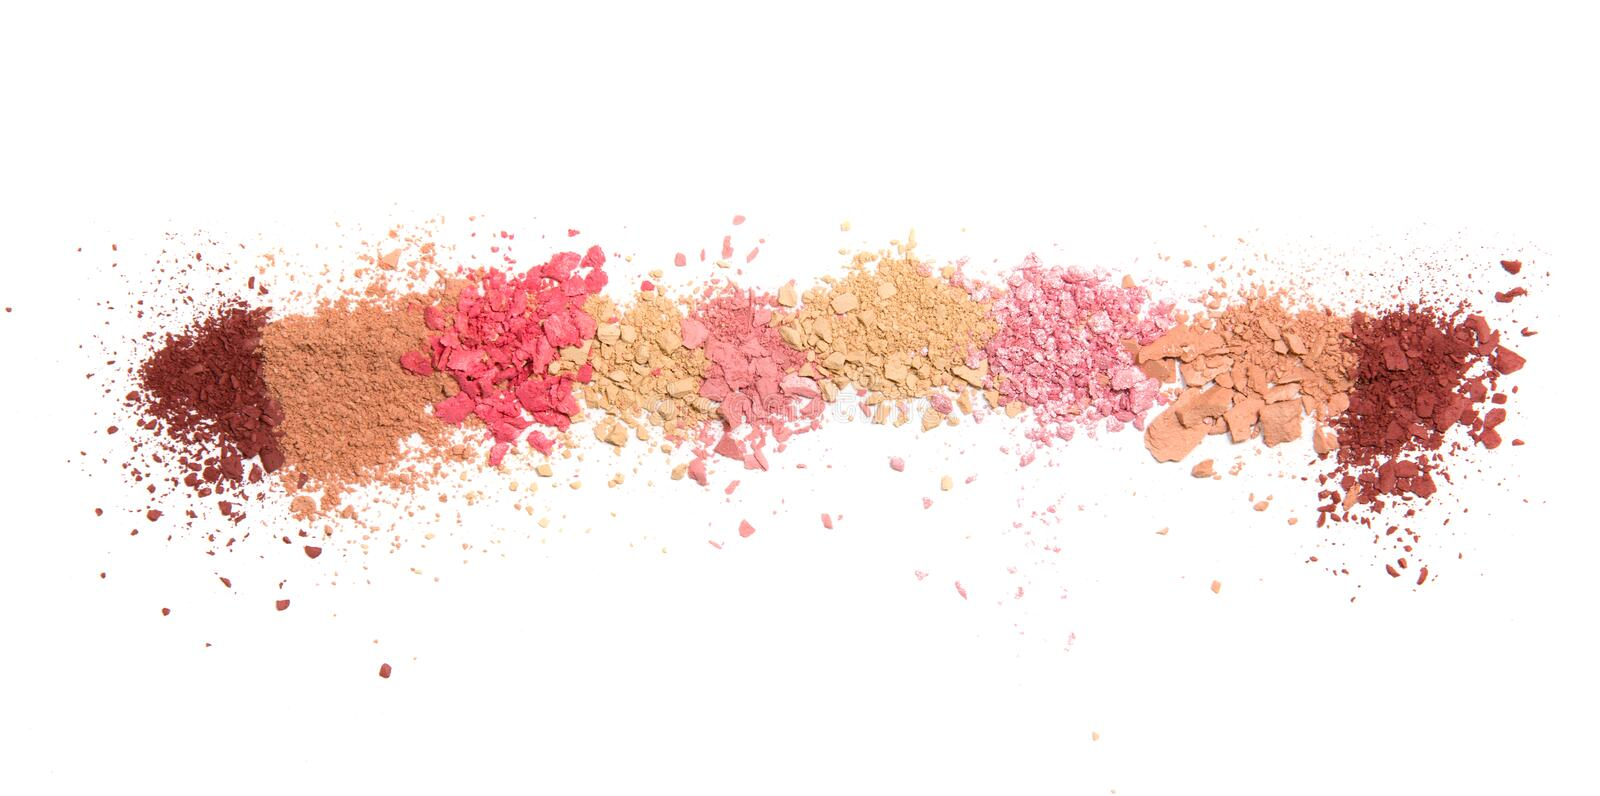 Samples of dry blush, powder, bronzers and highlighter scattered in a line isolated on a white background royalty free stock photos